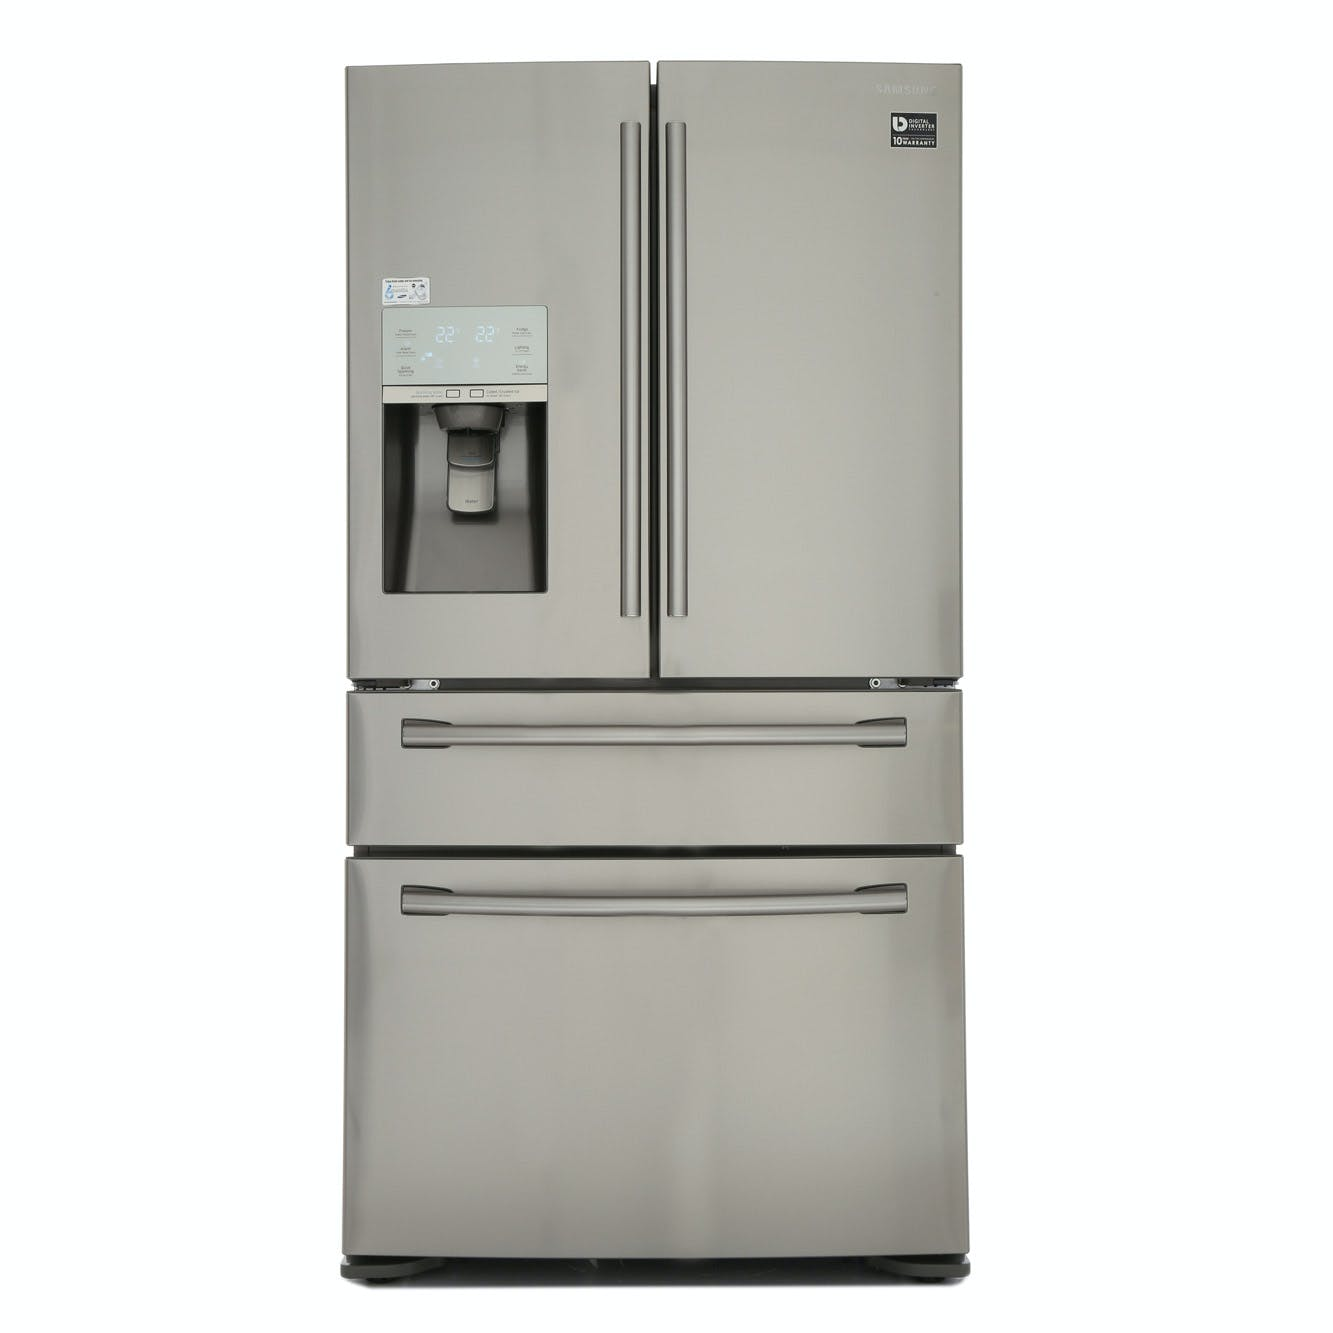 samsung rf24hsesbsr french style 4 door fridge freezer in. Black Bedroom Furniture Sets. Home Design Ideas